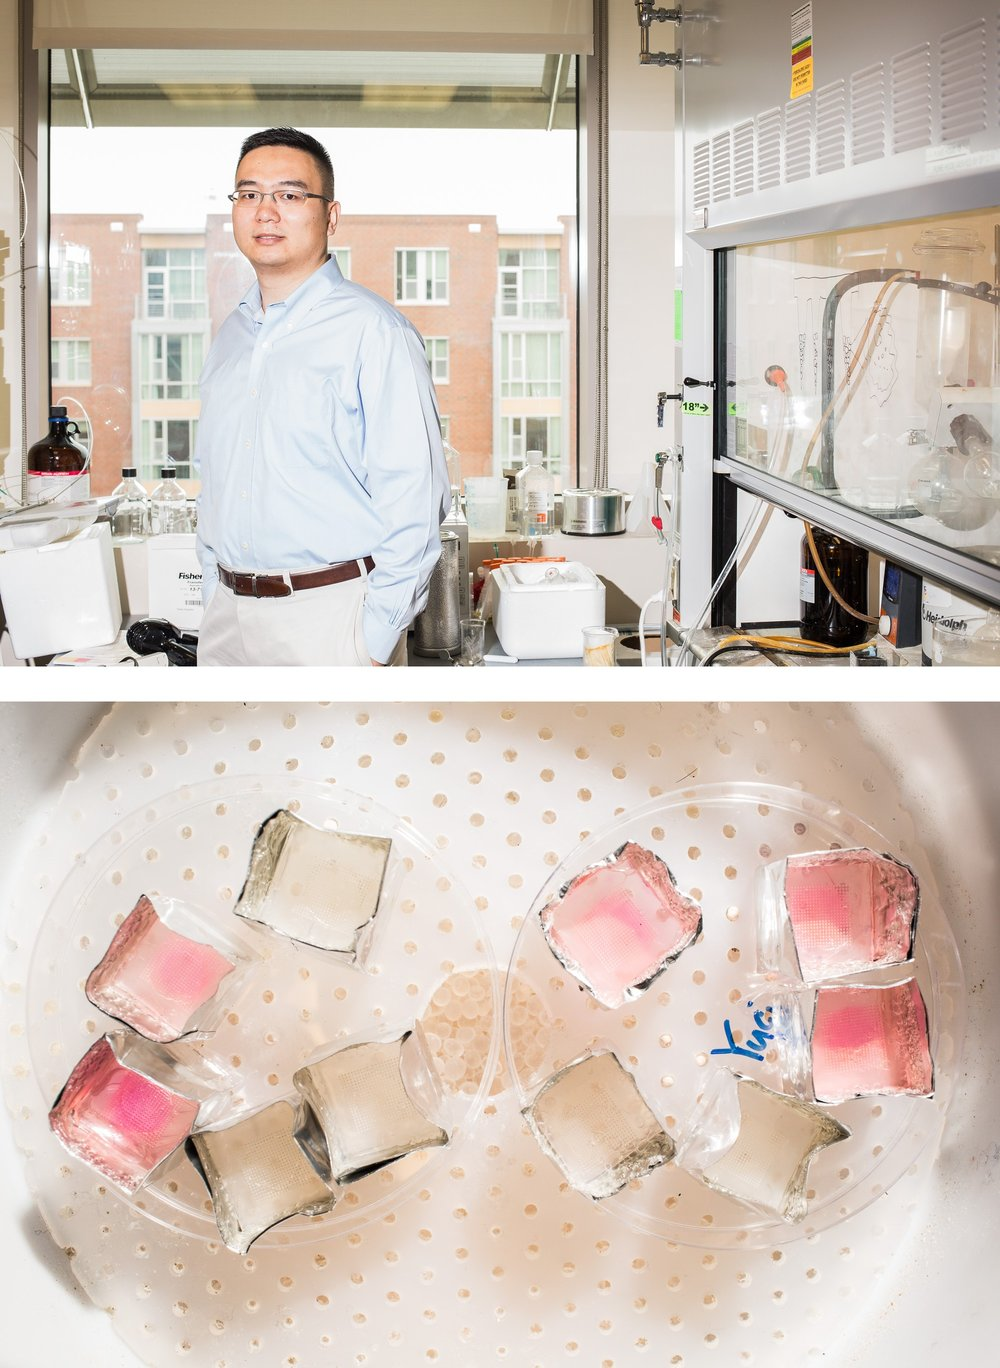 Dr. Zhen Gu, a medical researcher best known for his smart insulin patch, for STAT Magazine.